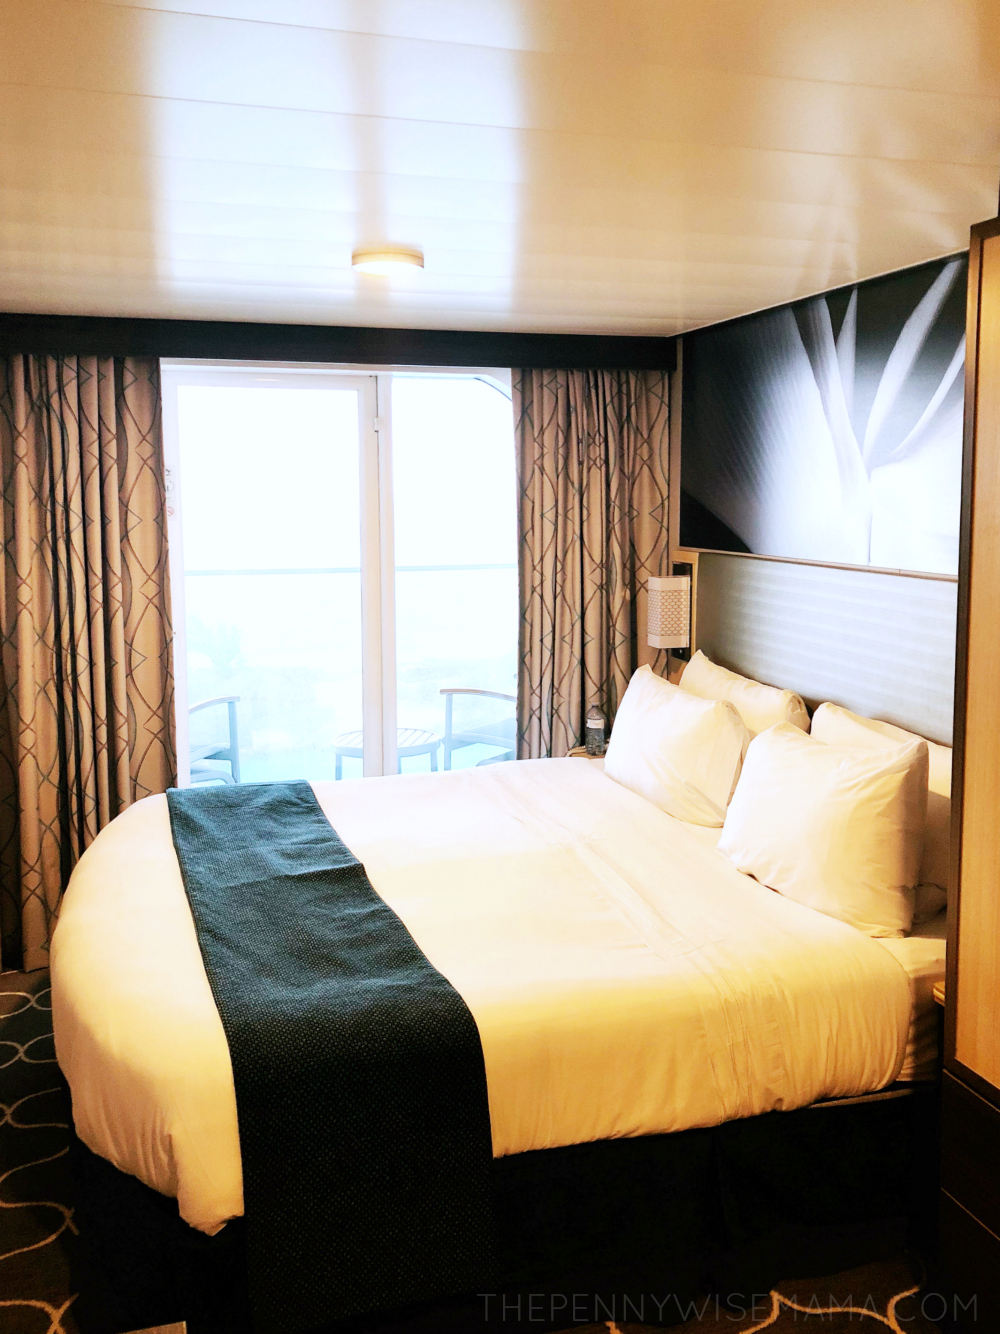 Symphony of the Seas Balcony Cabin